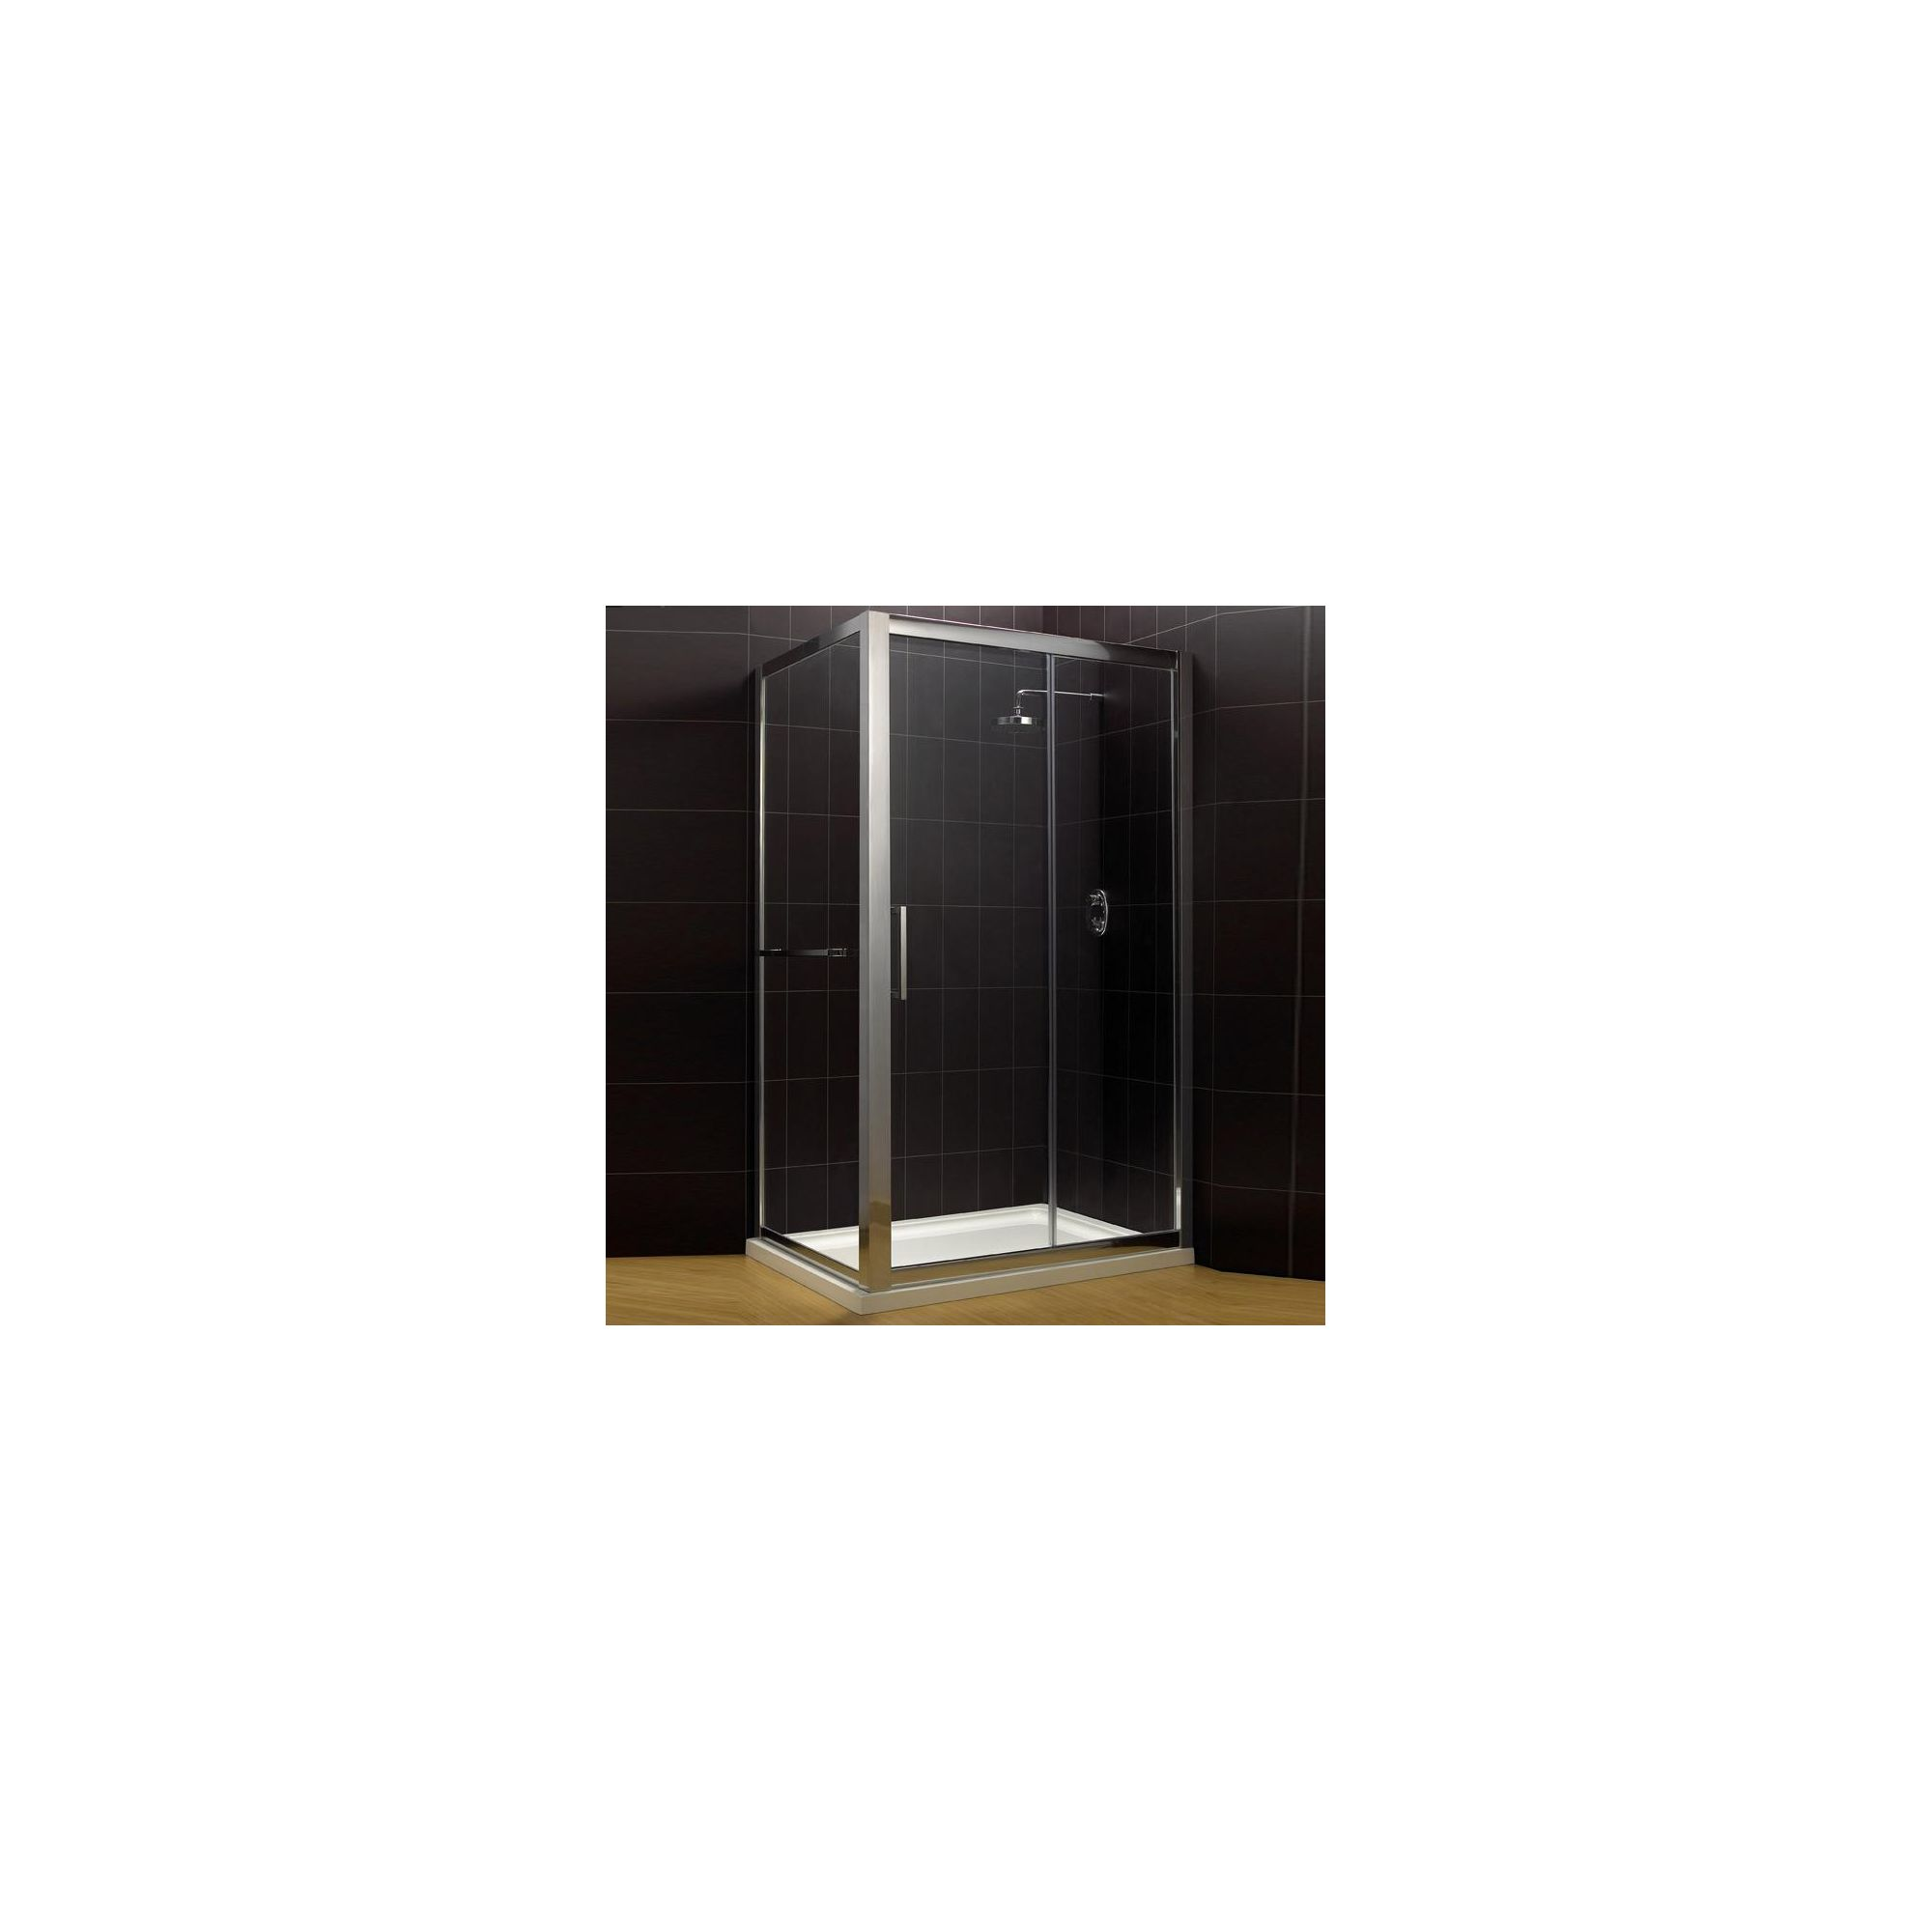 Duchy Supreme Silver Sliding Door Shower Enclosure, 1000mm x 800mm, Standard Tray, 8mm Glass at Tesco Direct